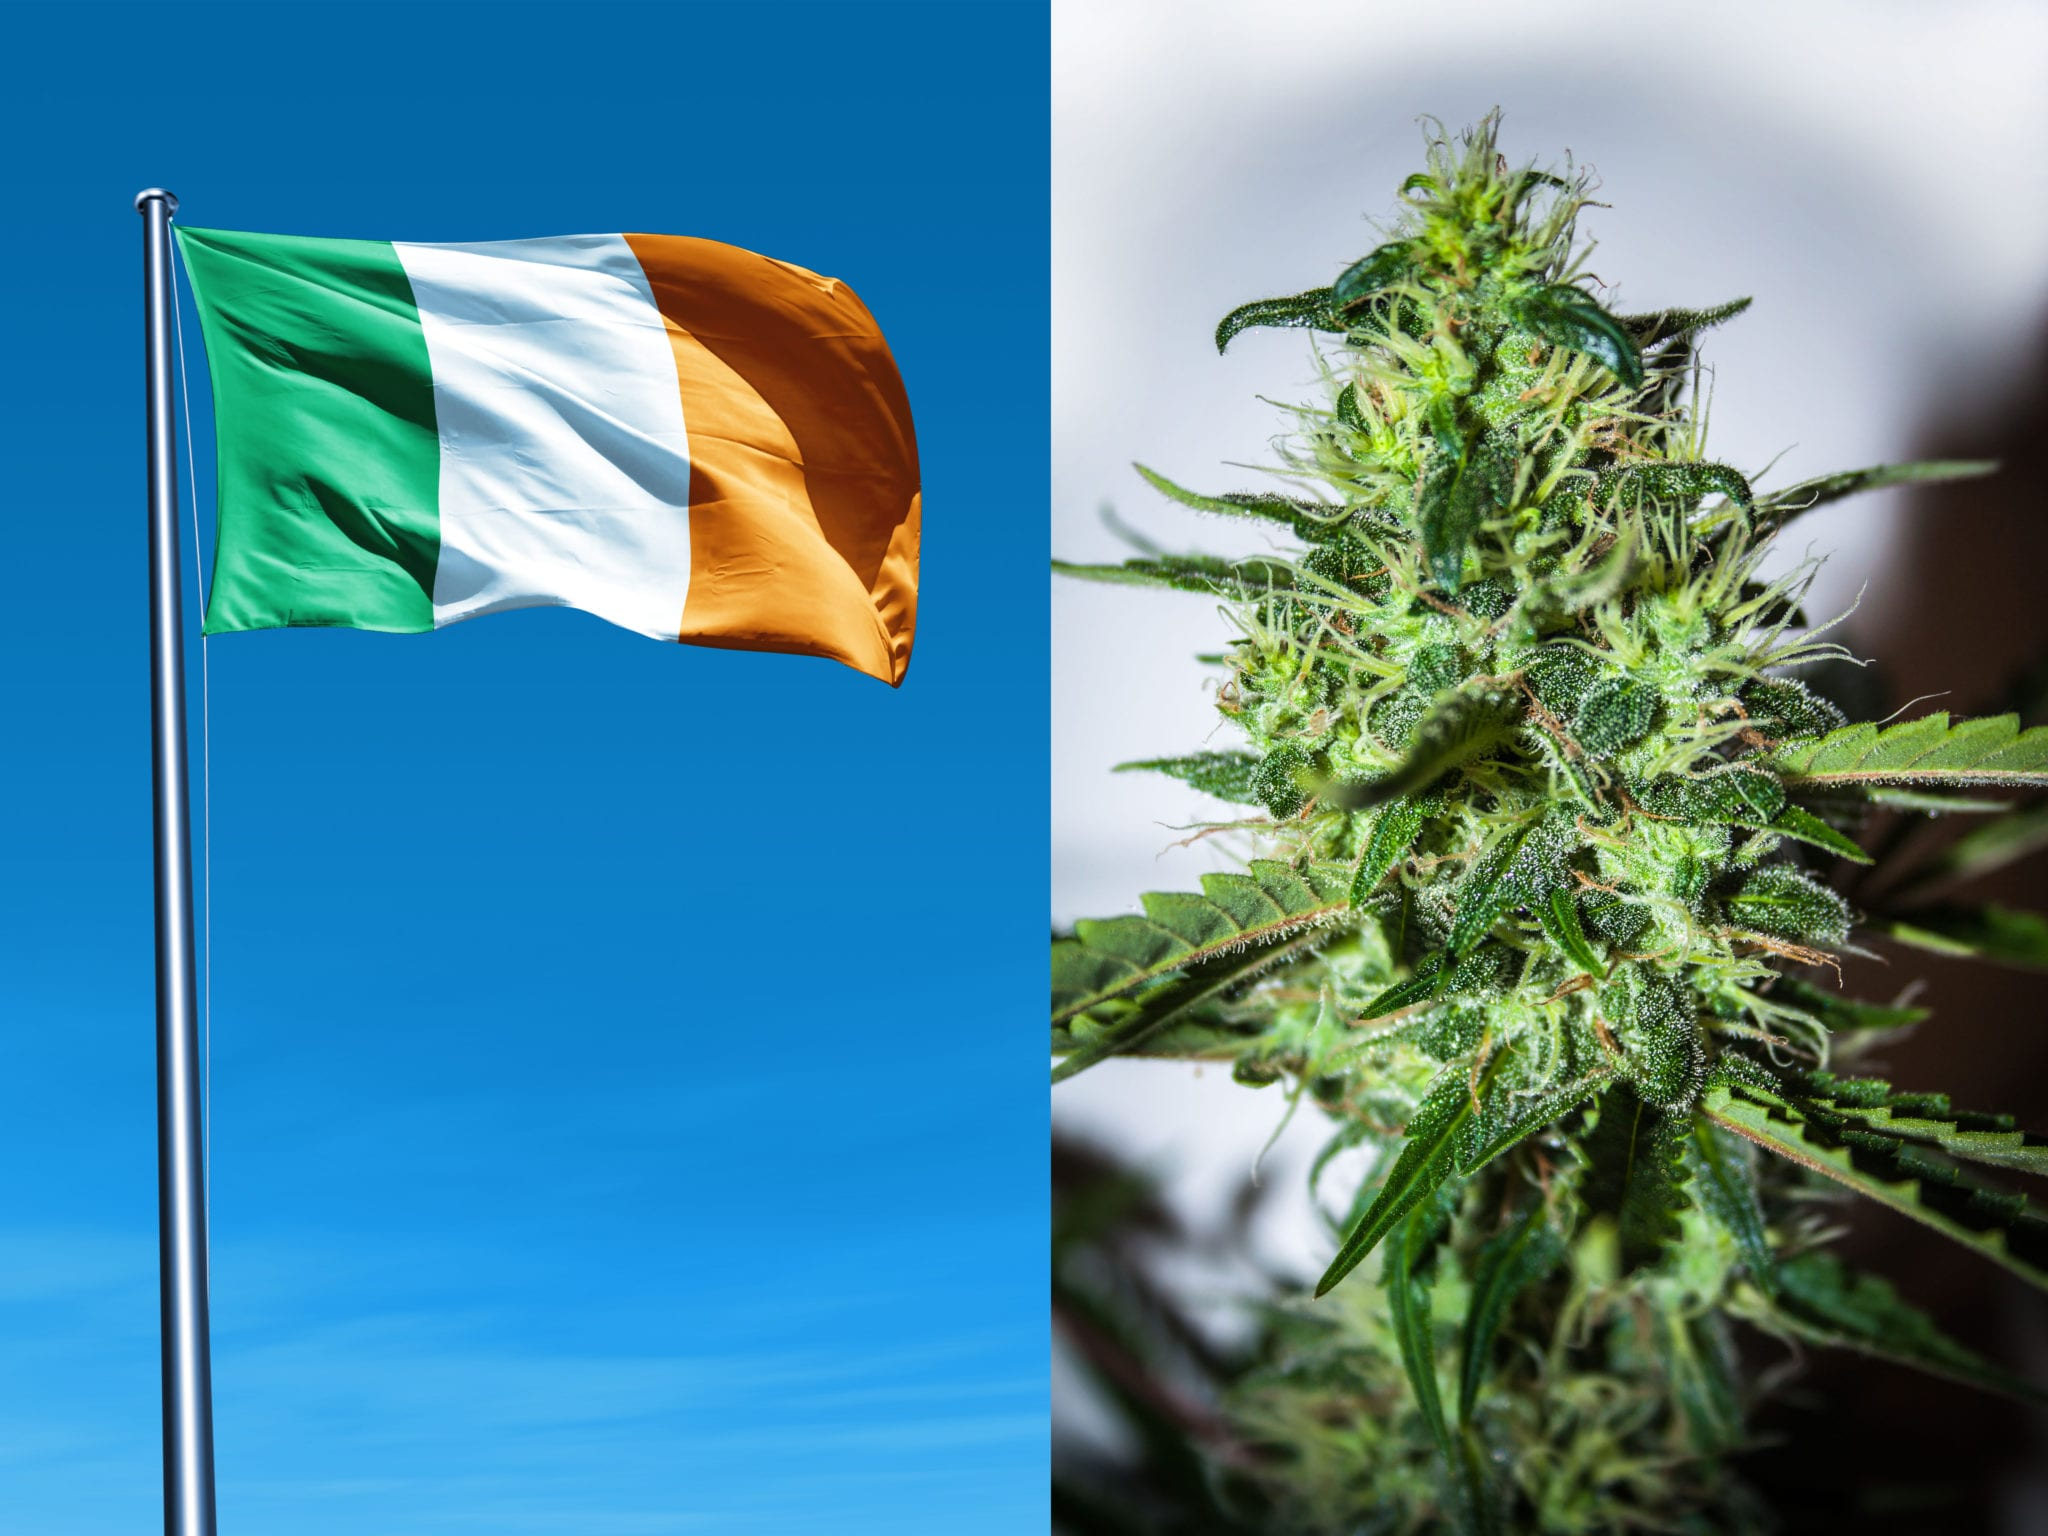 Ireland's Health Minister signed legislation last week which will allow citizens to gain limited access to medical cannabis under a pilot program that will last five years.